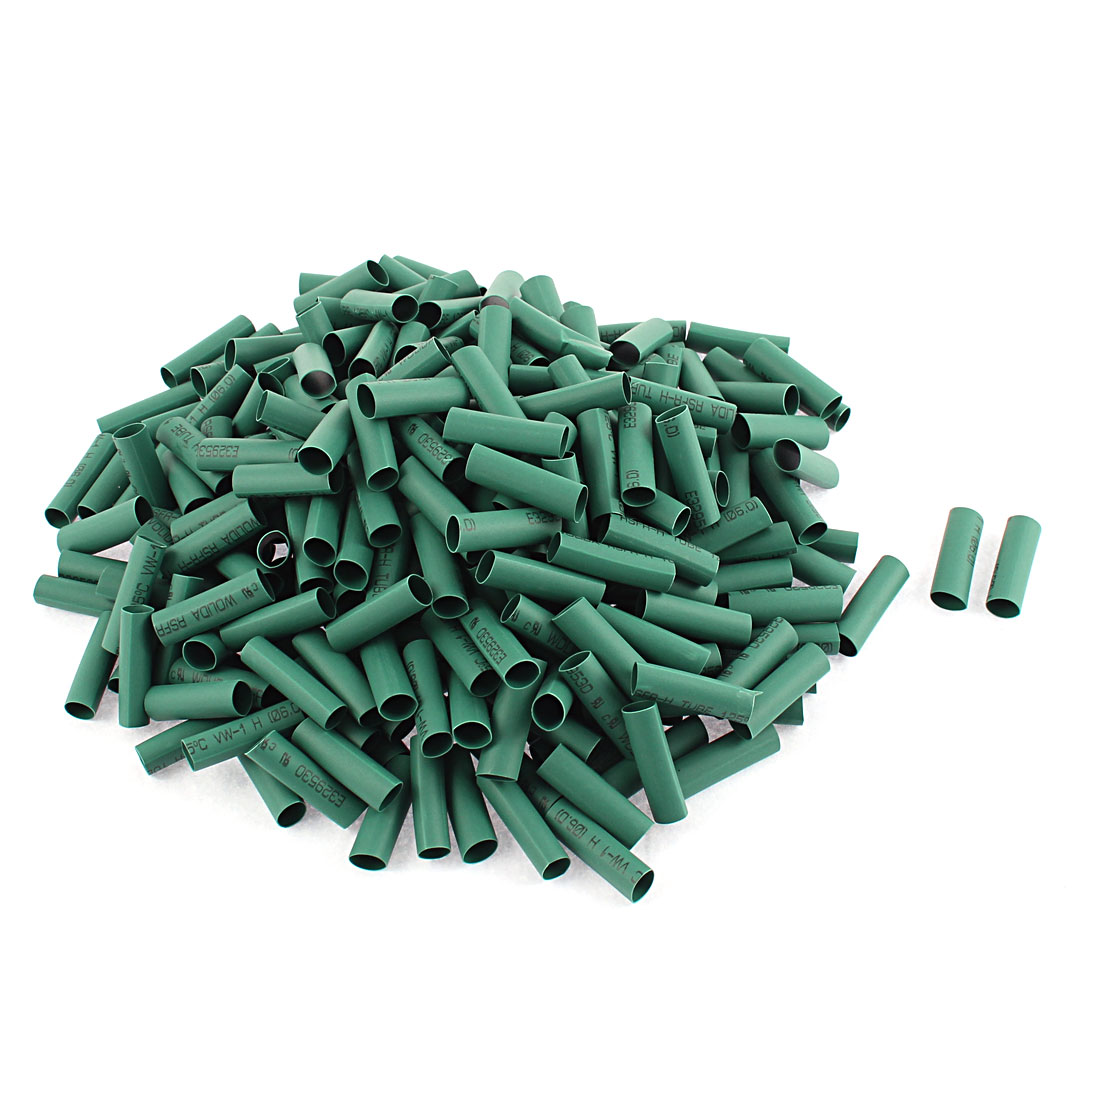 Electrical Connection Cable Sleeve 25mm Length Heat Shrink Tubing Green 300Pcs